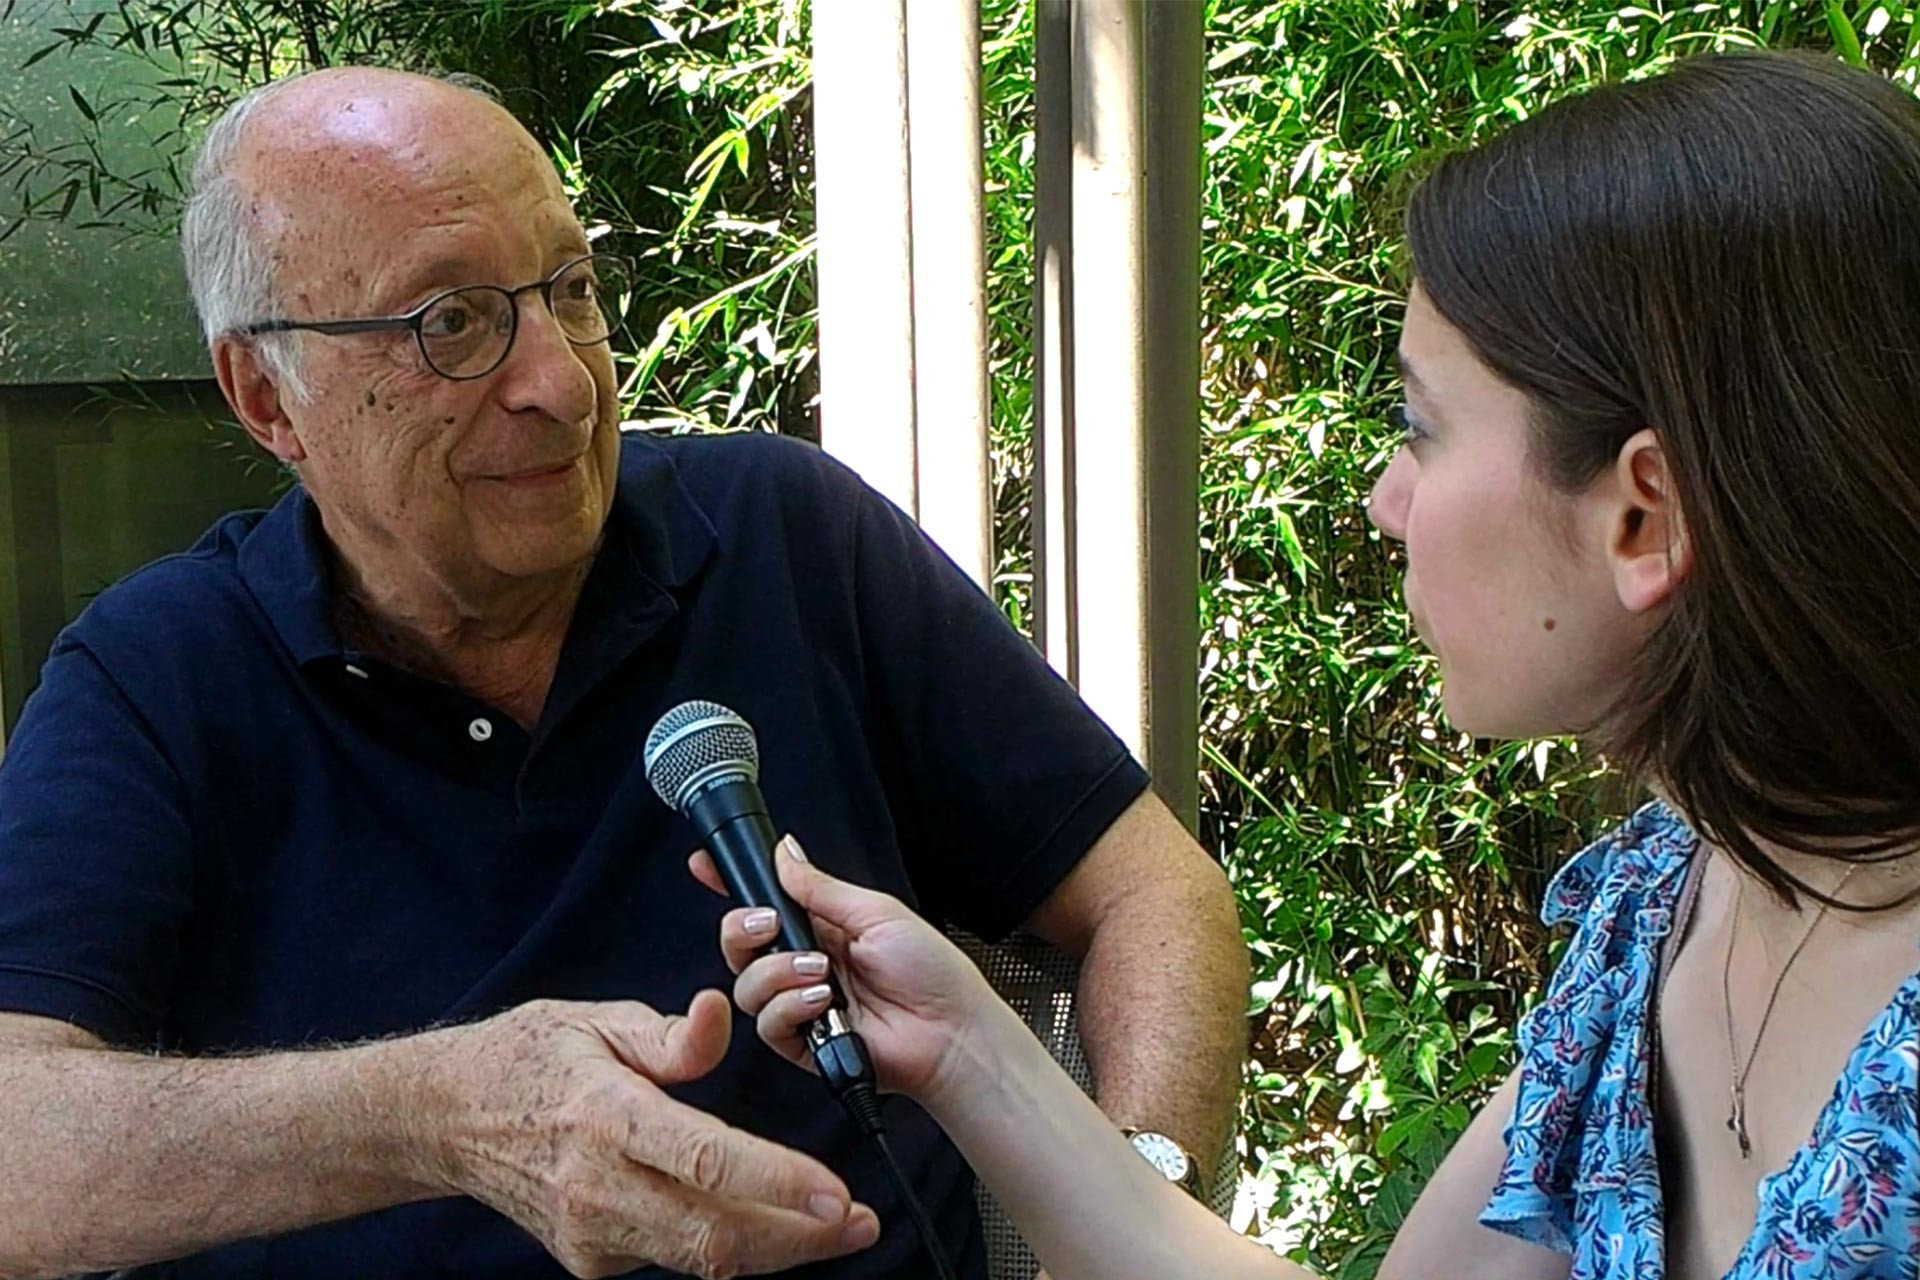 Spokesperson For Unity For Democracy, Rıza Türmen: There is a need for a new social contract